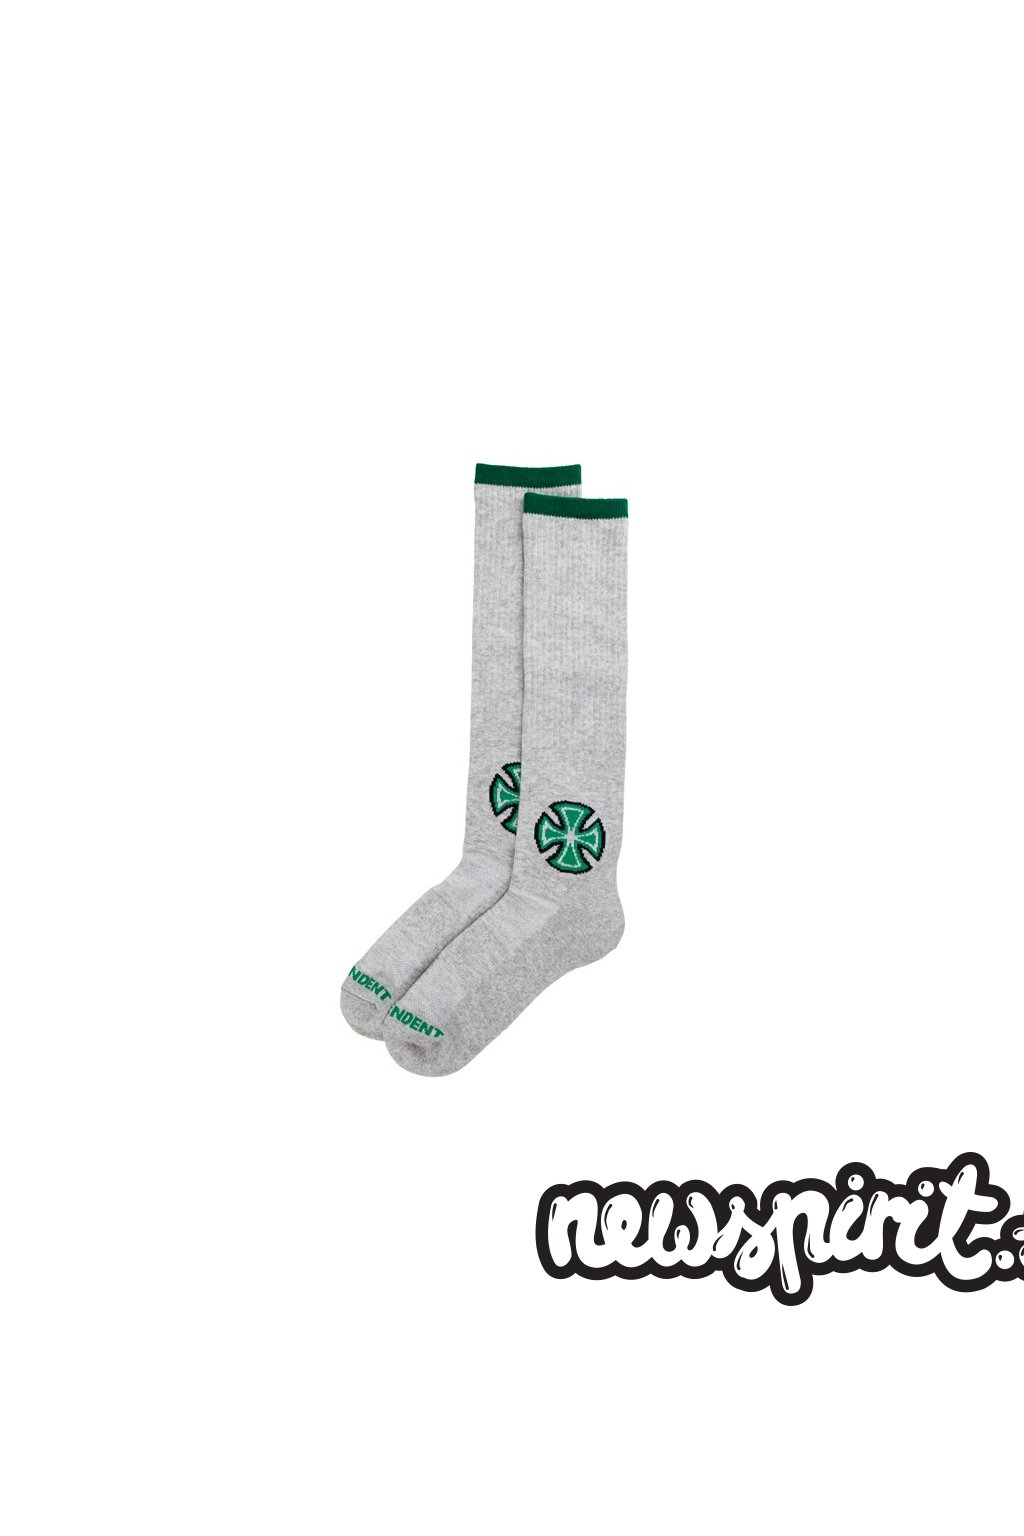 INdependent SP19 ACCS Socks Primary BC Athletic Heather